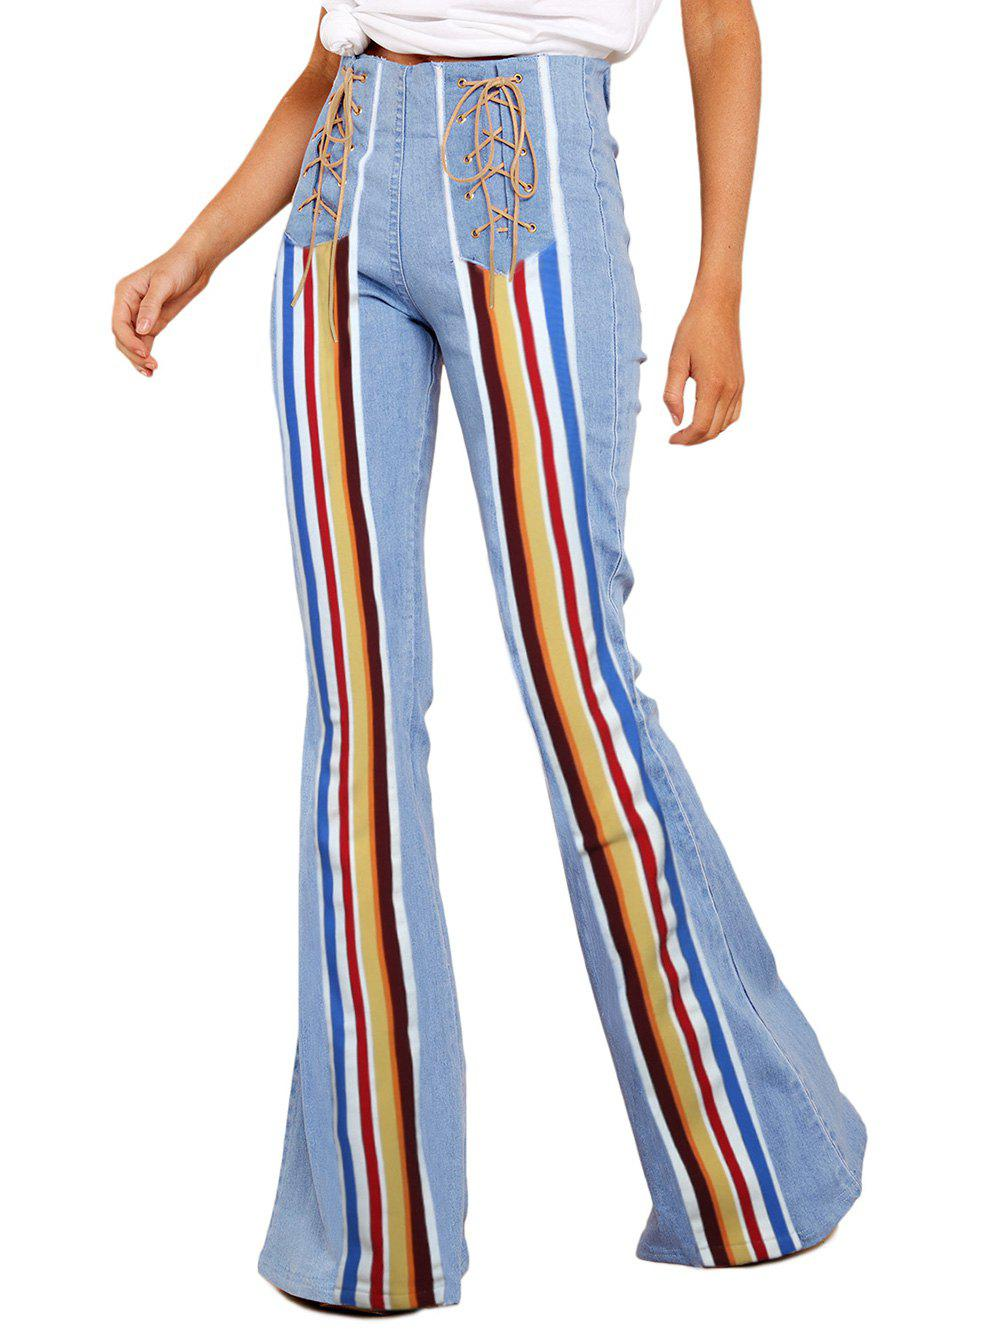 Shops Lace Up Striped Panel High Waisted Flare Jeans